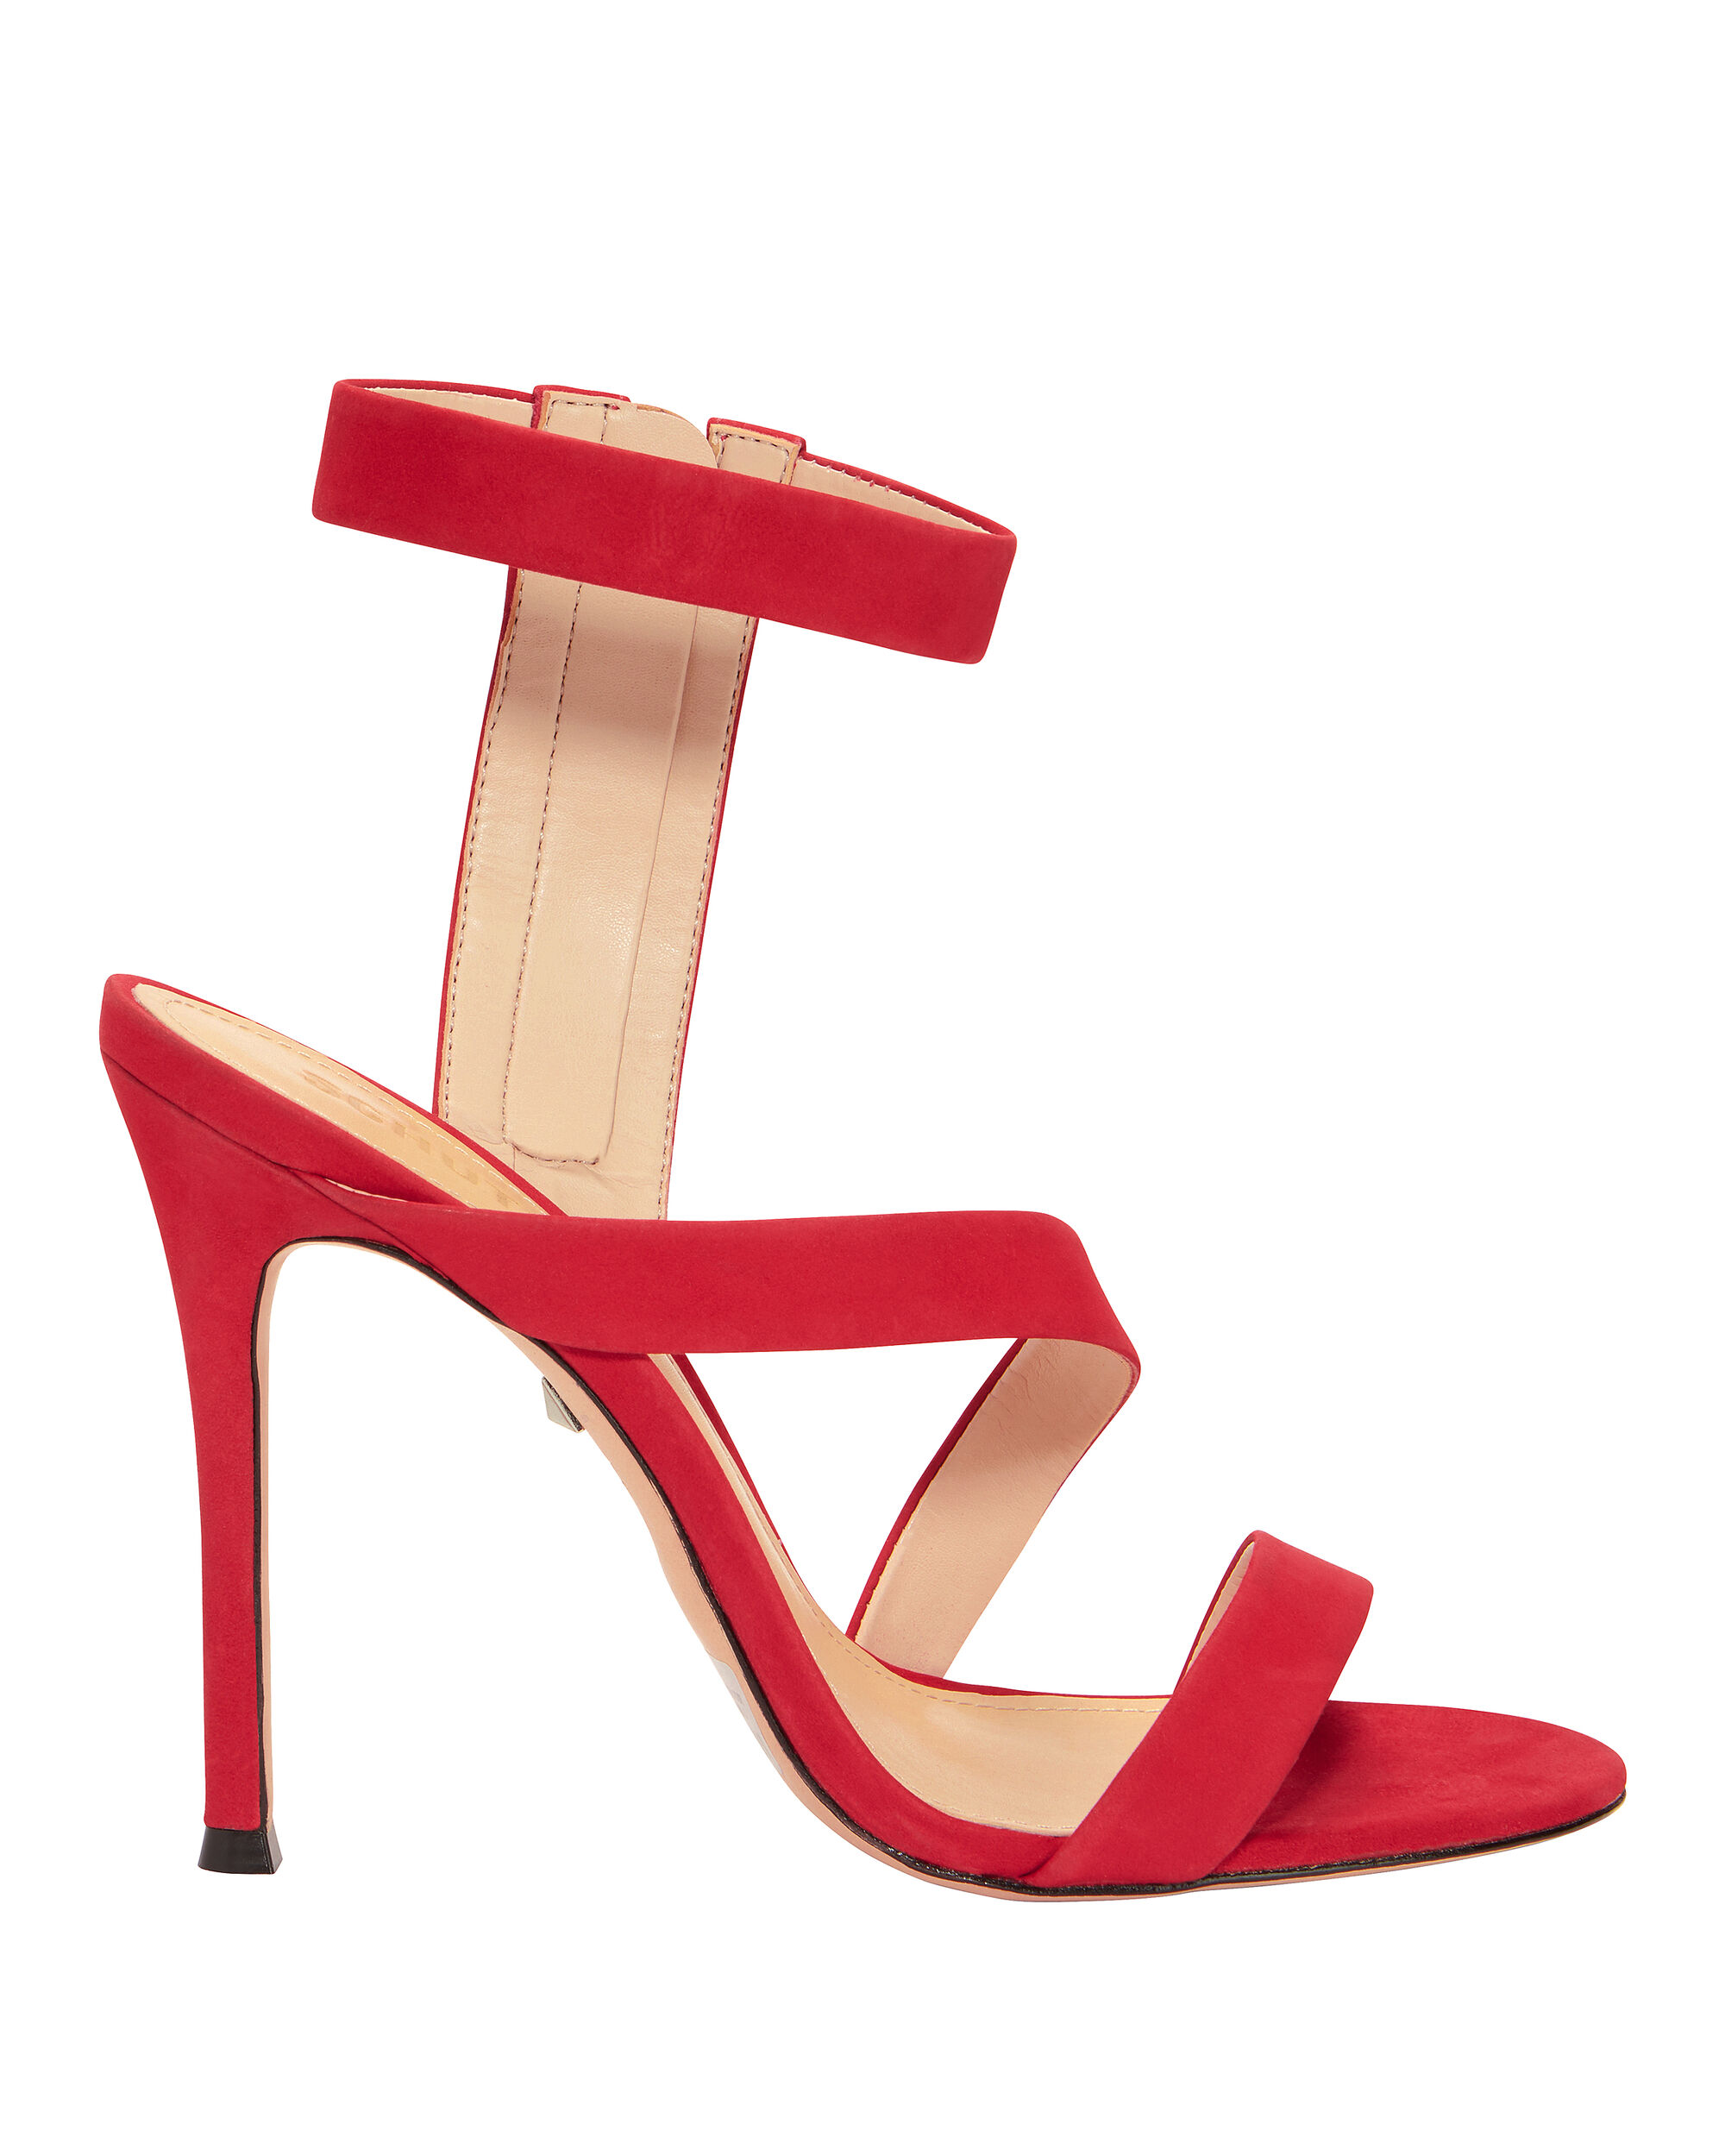 Lauanne Strappy Red Sandals, RED, hi-res